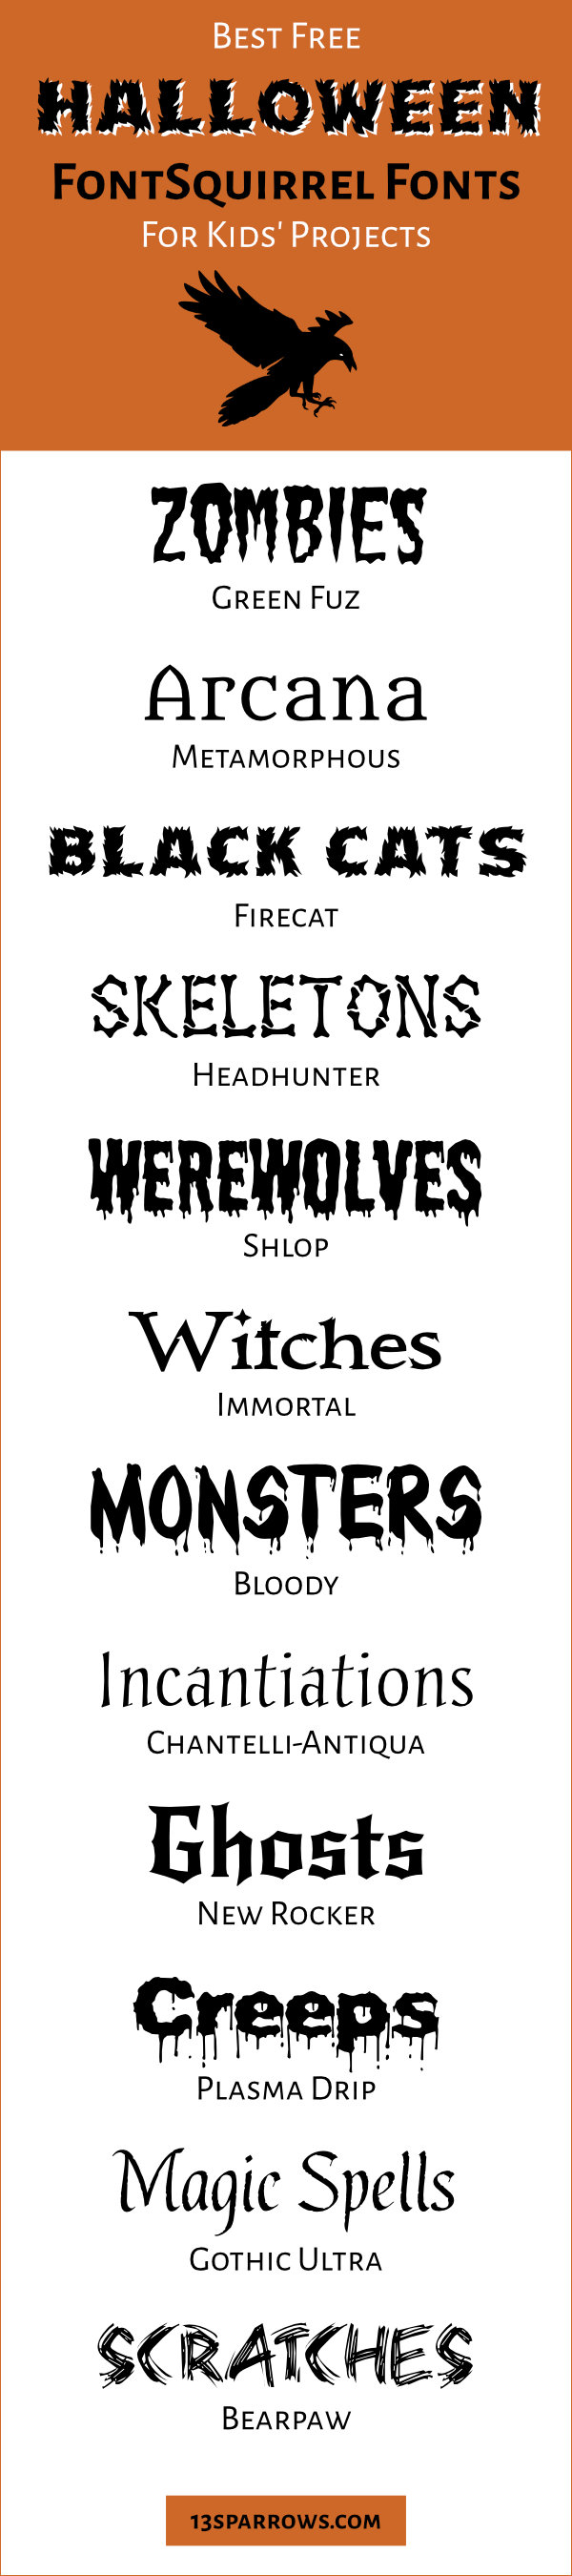 Free Halloween fonts from fontsquirrel | 13sparrows. If you are making spooky resources for kids, I've found some more great free fonts!